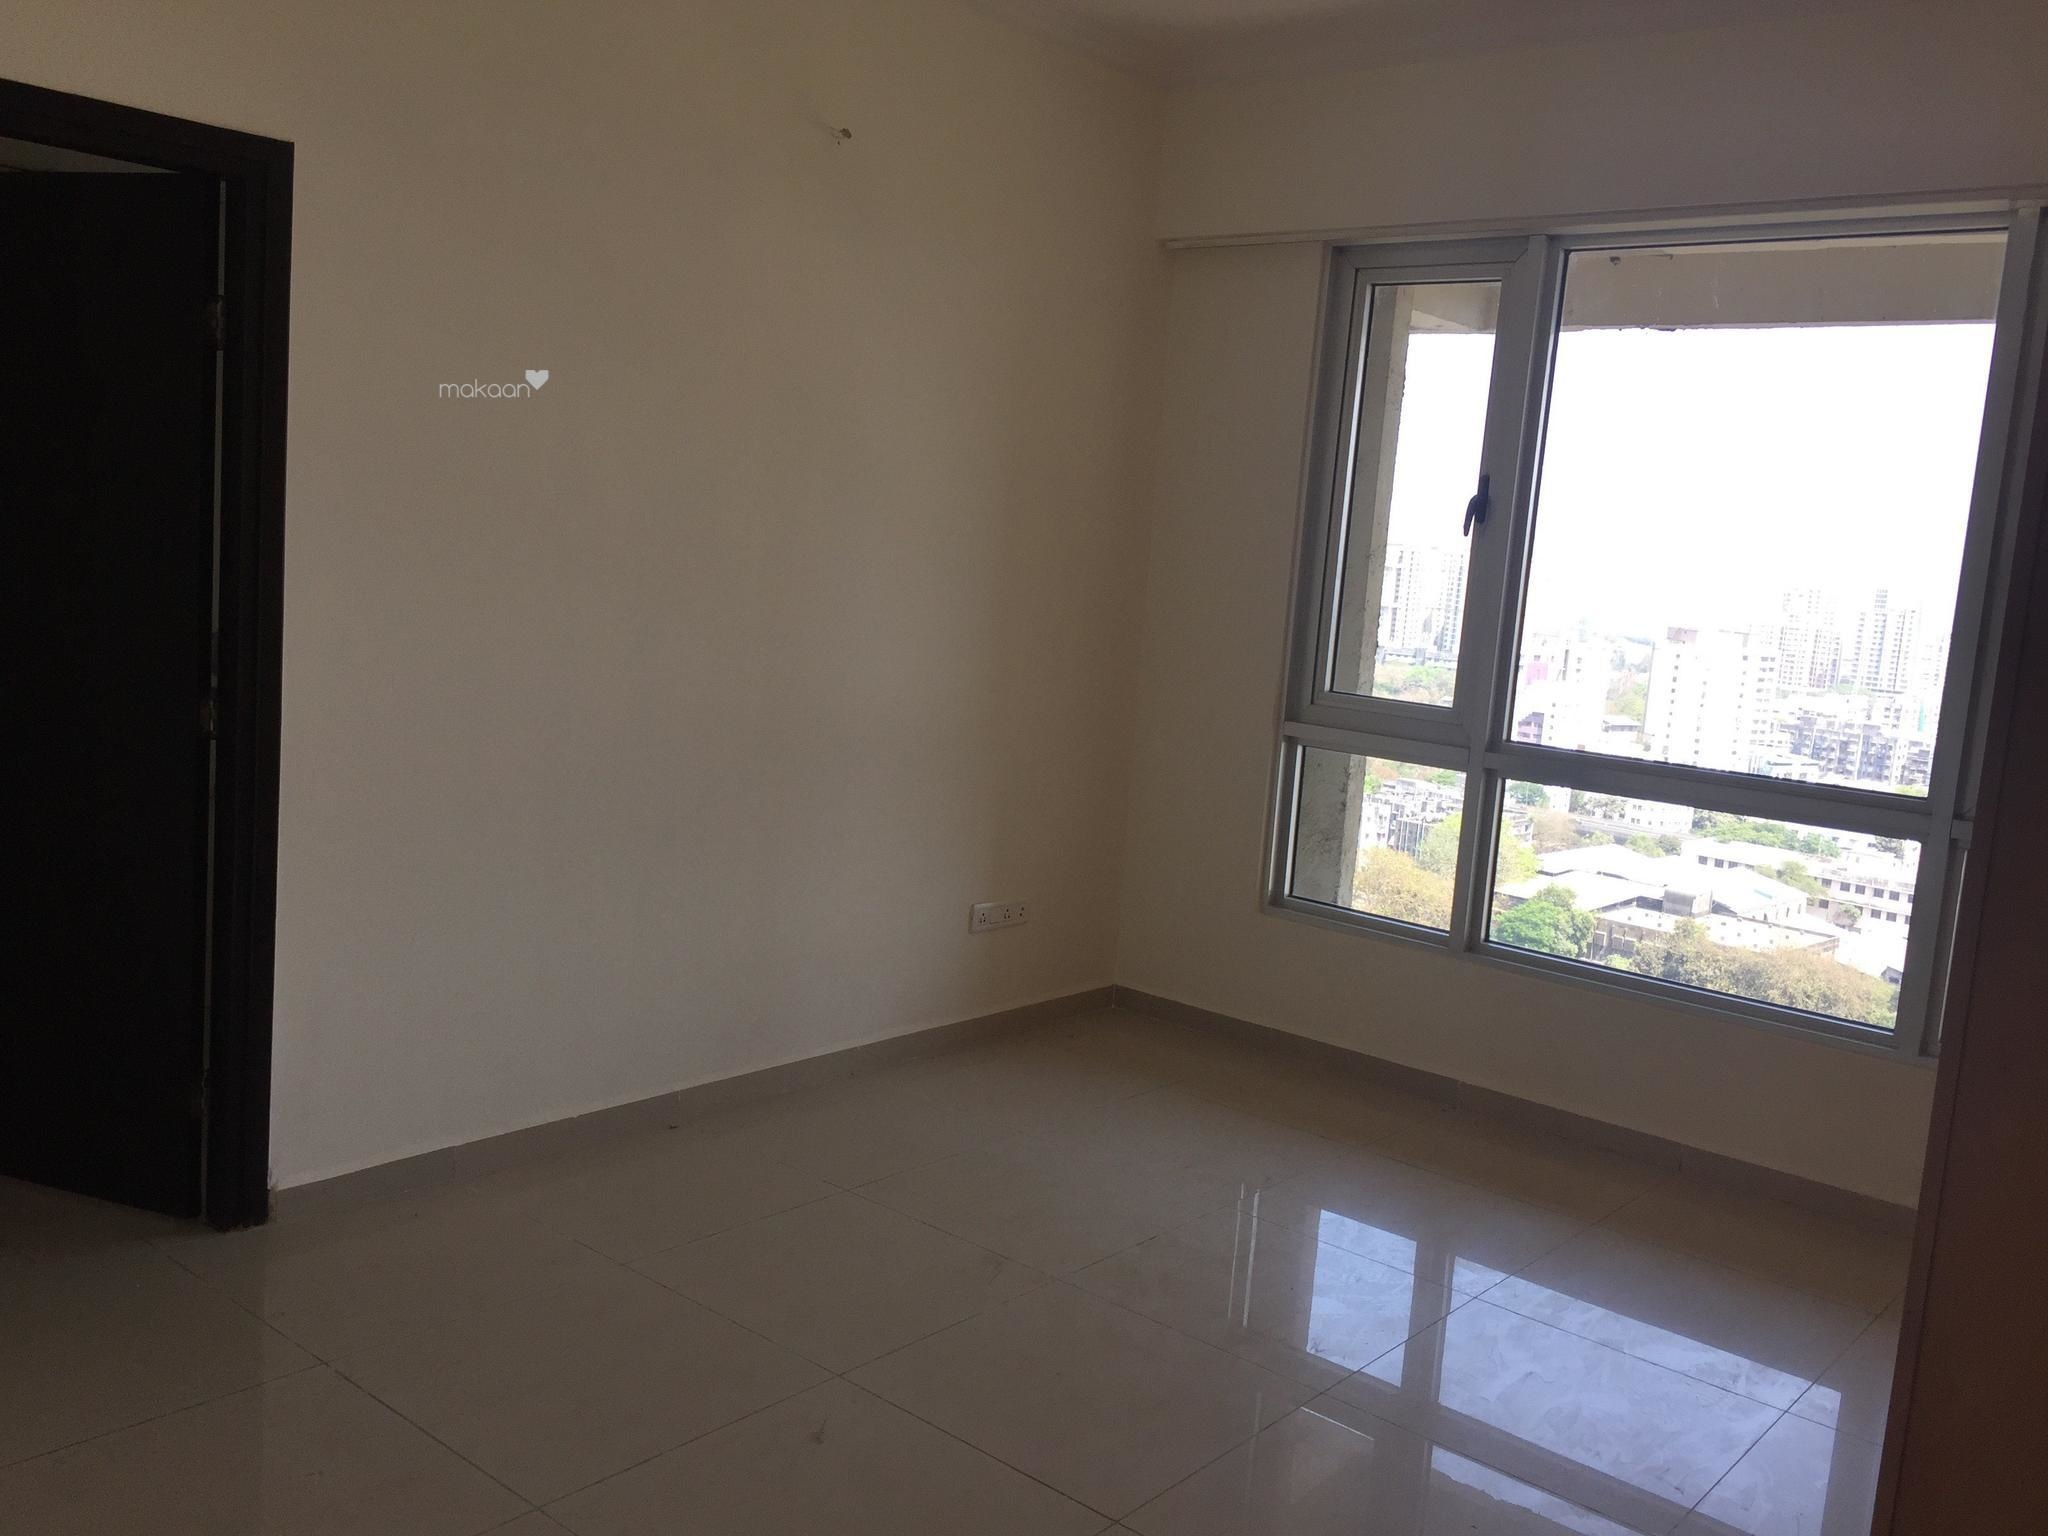 1800 sq ft 3BHK 3BHK+4T (1,800 sq ft) + Servant Room Property By Black and White Aventura In Planet, Mahalaxmi